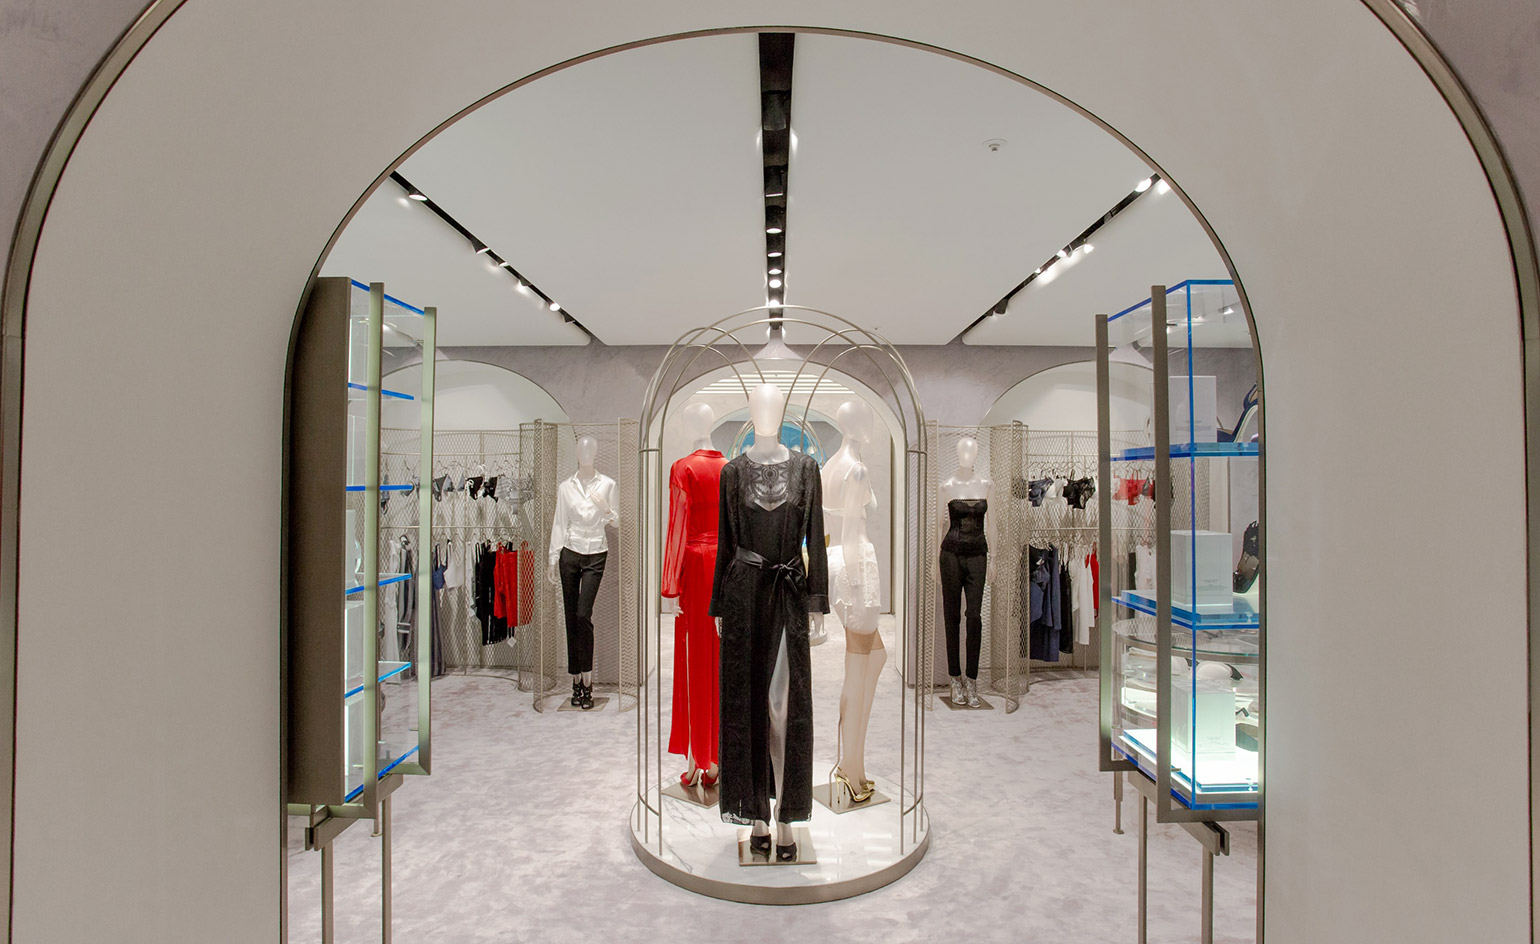 Inside the La Perla store on Hong Kong's Russell Street in Causeway Bay. Opened in 2015, the brand said at the time the four-storey, 8,000 square foot boutique was its largest store globally.